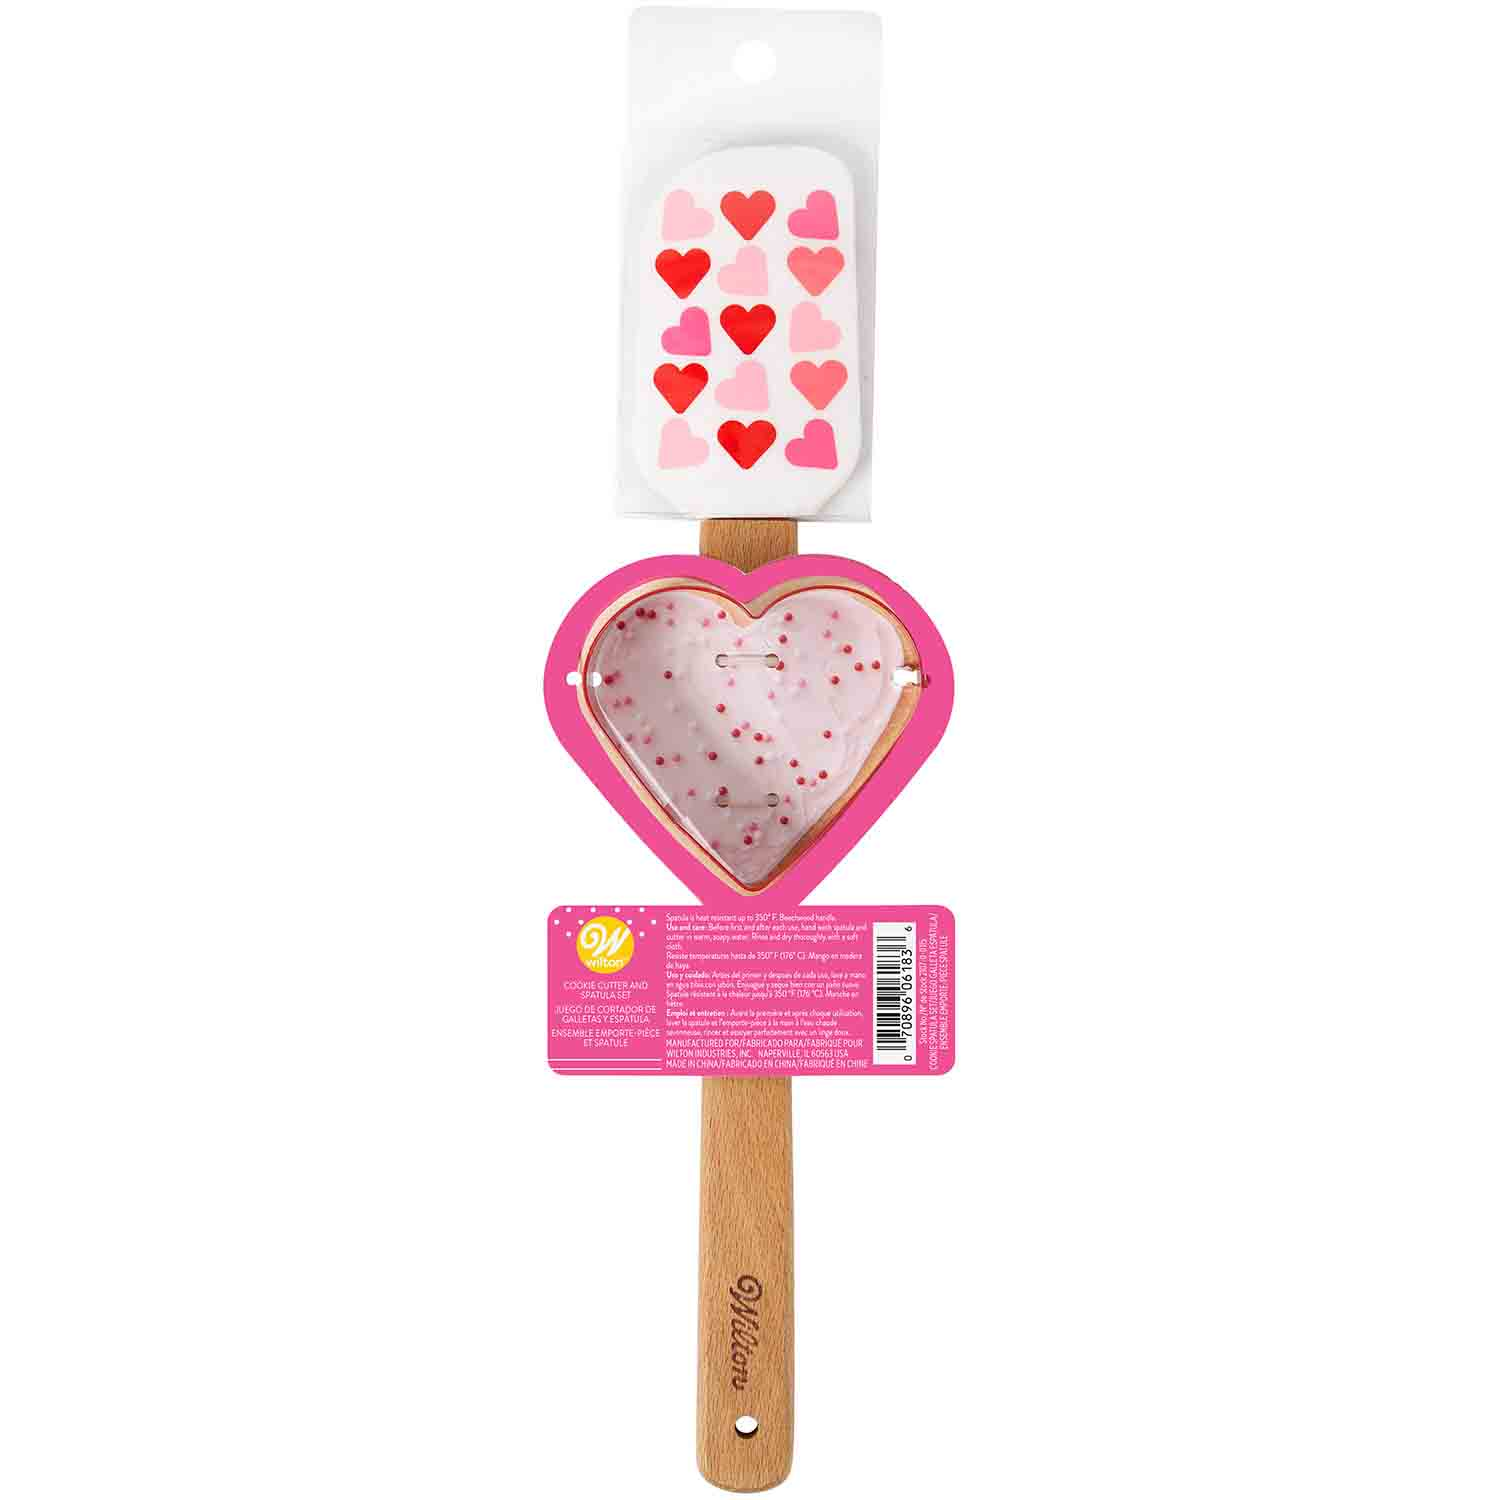 Valentine Heart Spatula and Cutter Set